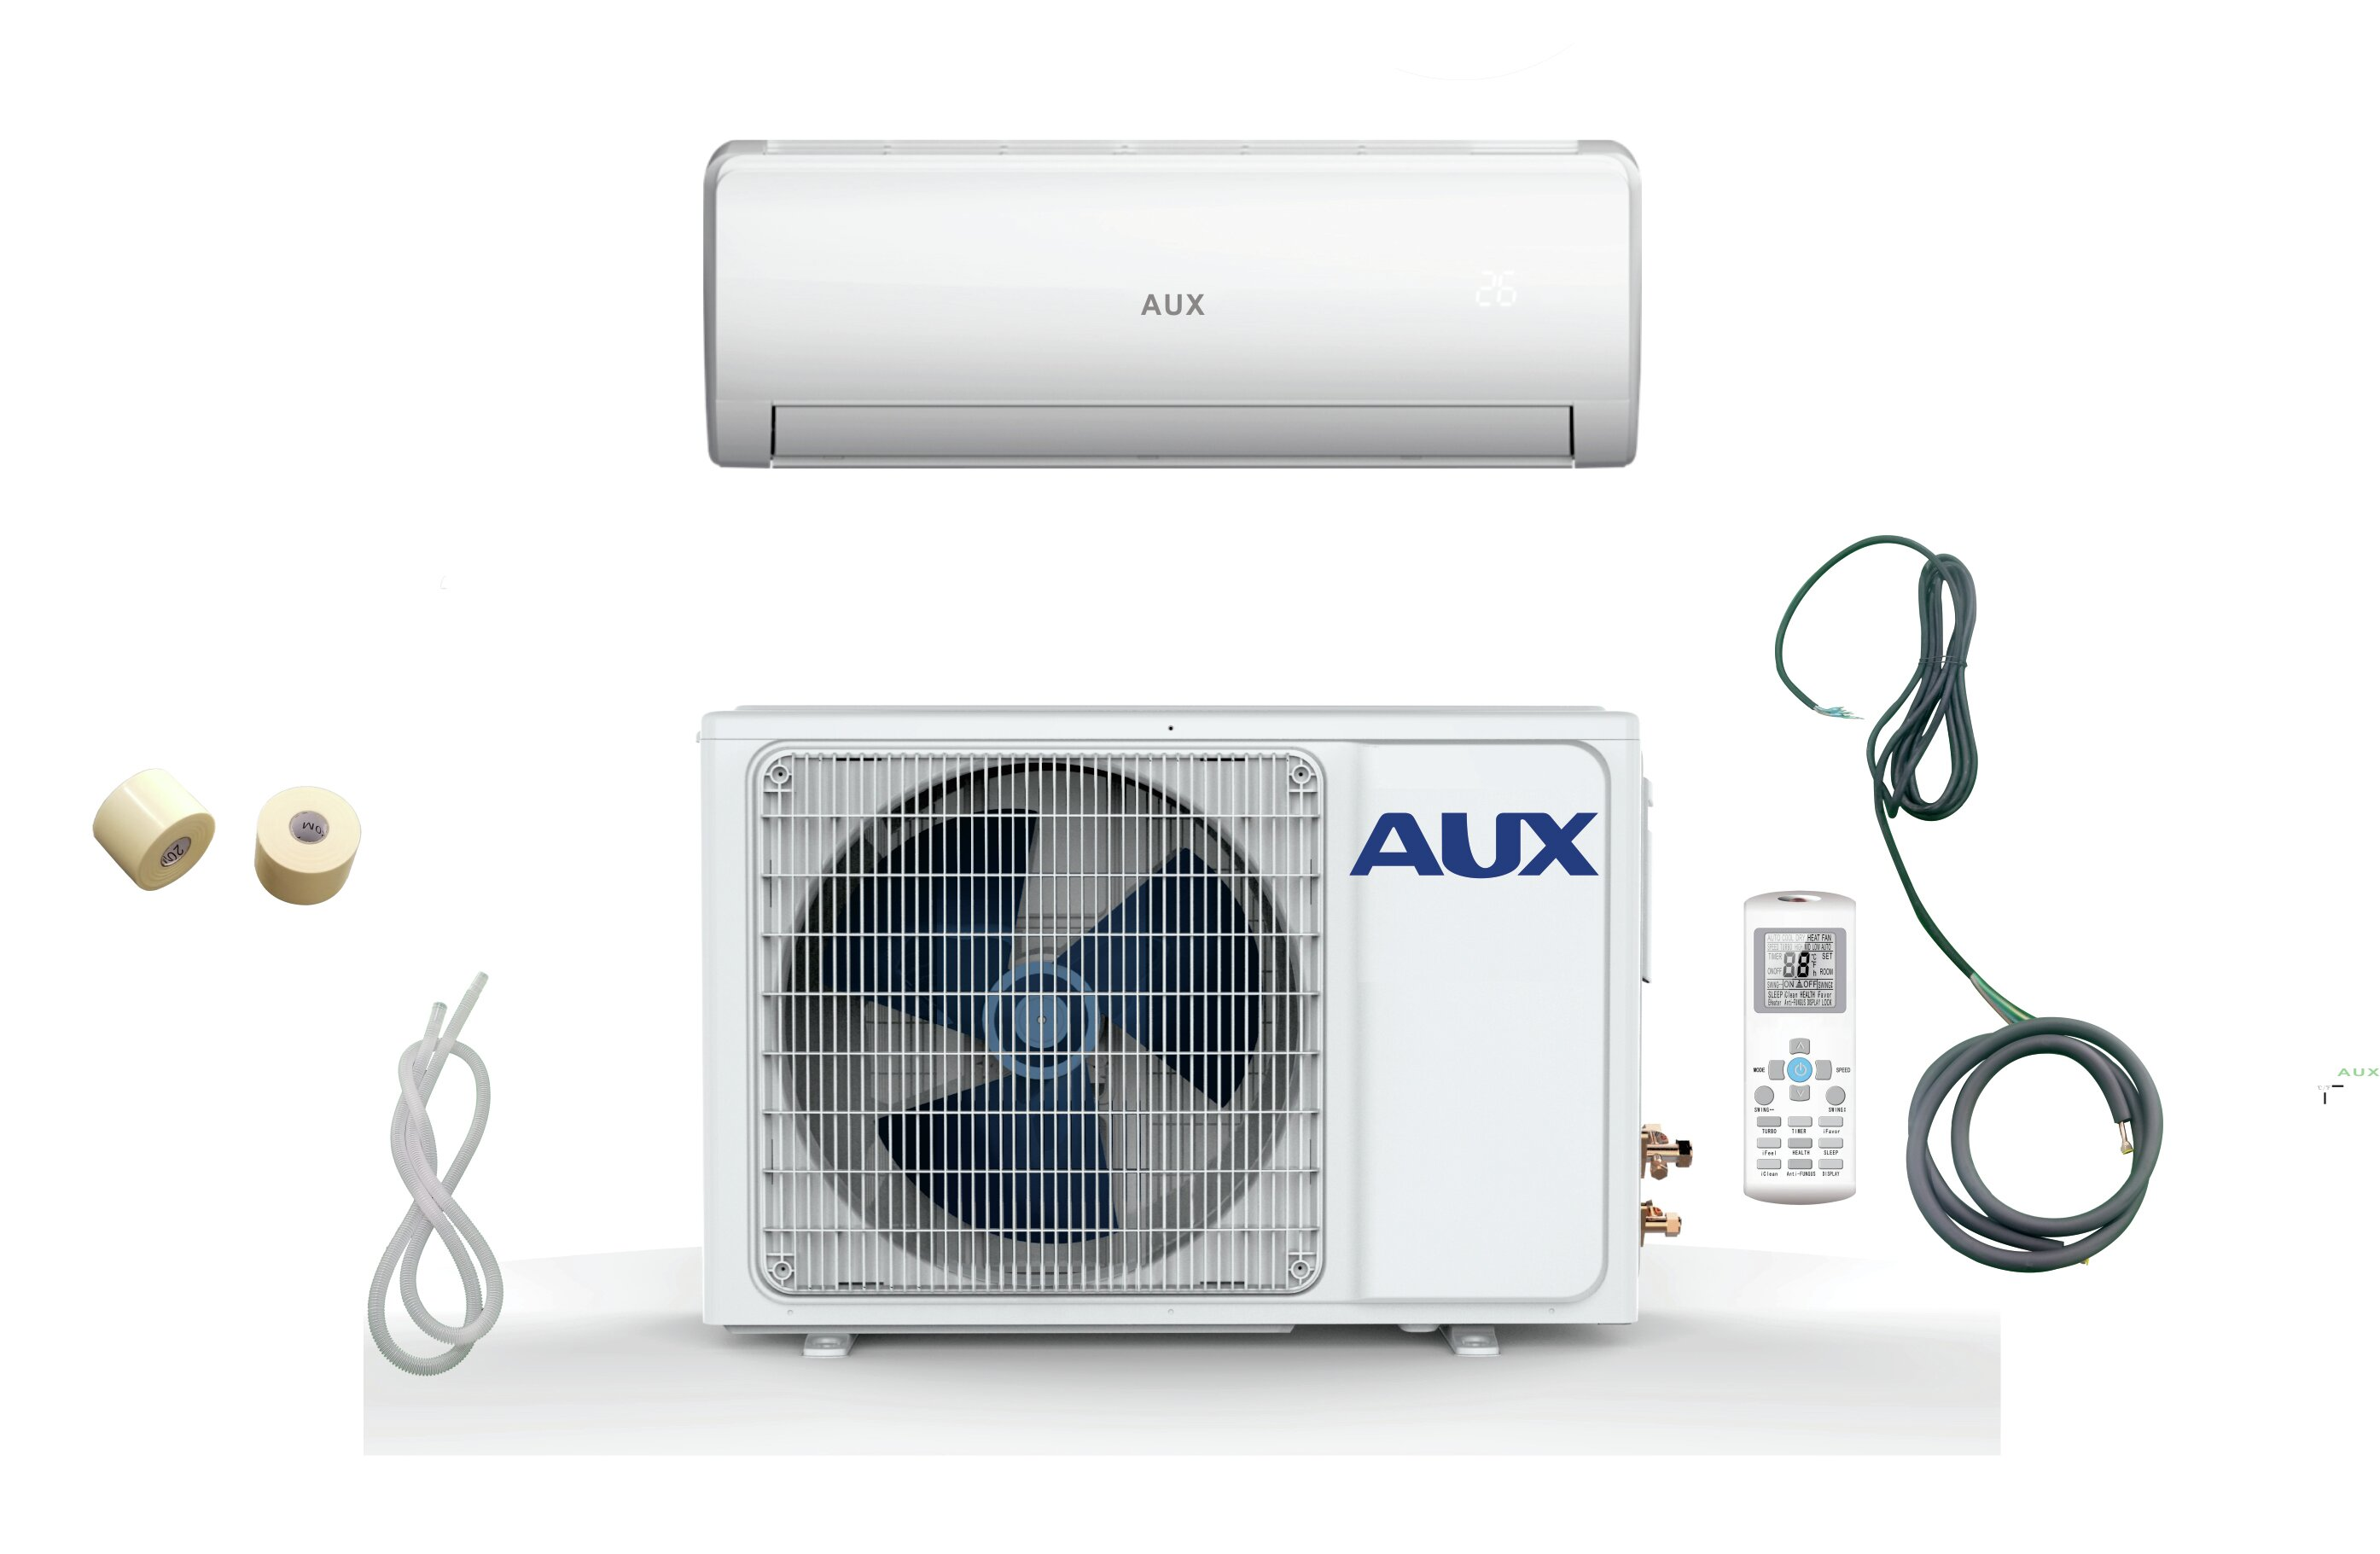 Aux 36 000 Btu Ductless Mini Split Air Conditioner With Heater Remote And Wifi Control Wayfair